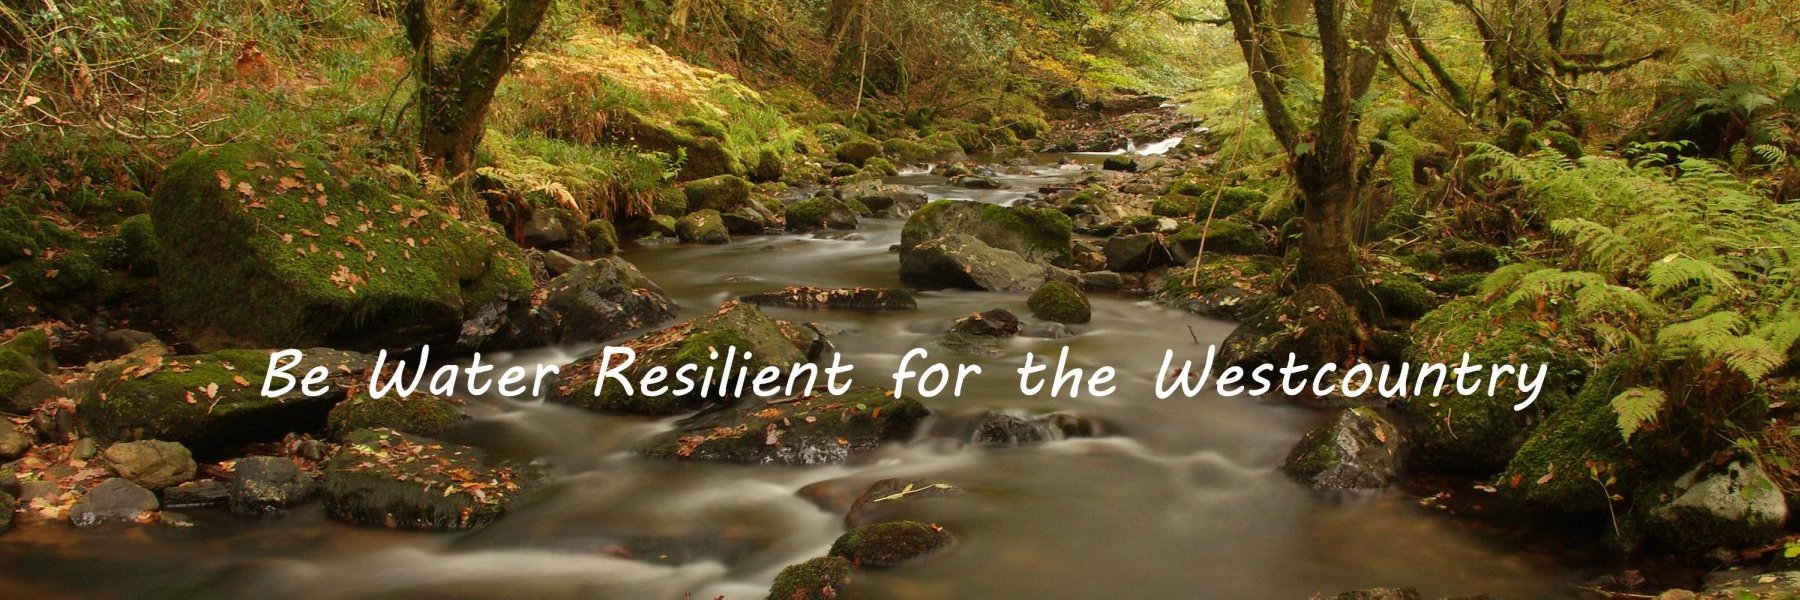 West Country Rivers Trust